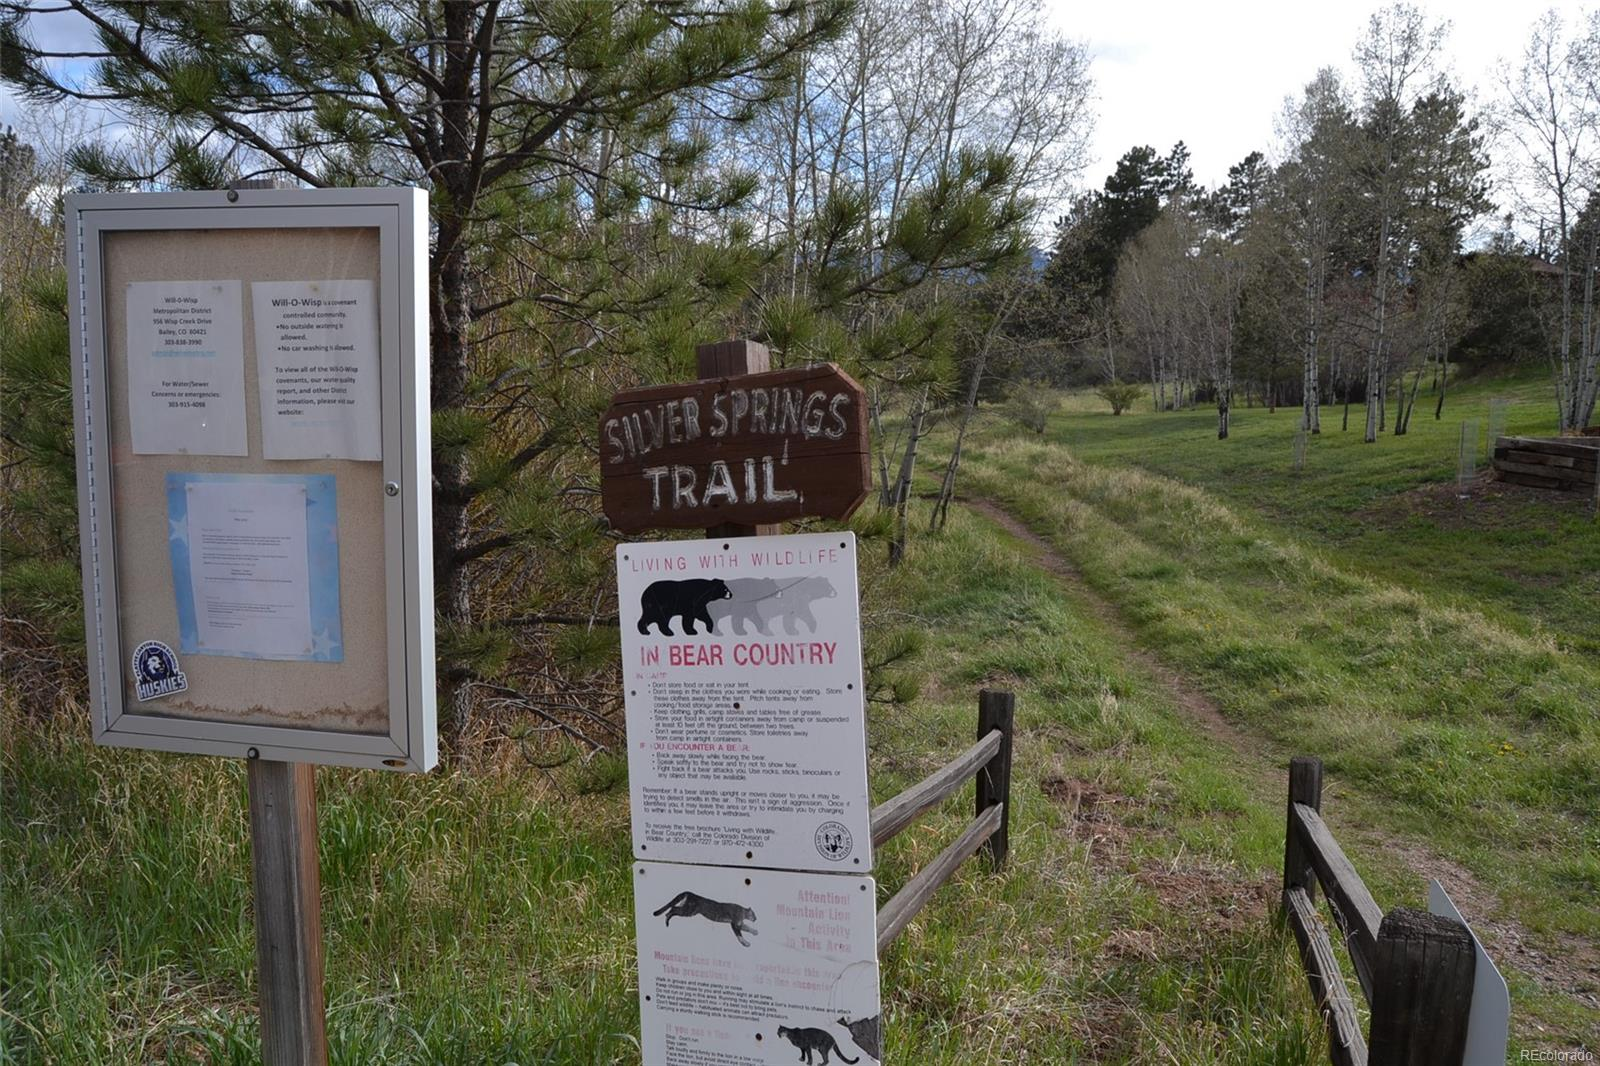 Plenty of trails and open space to discover